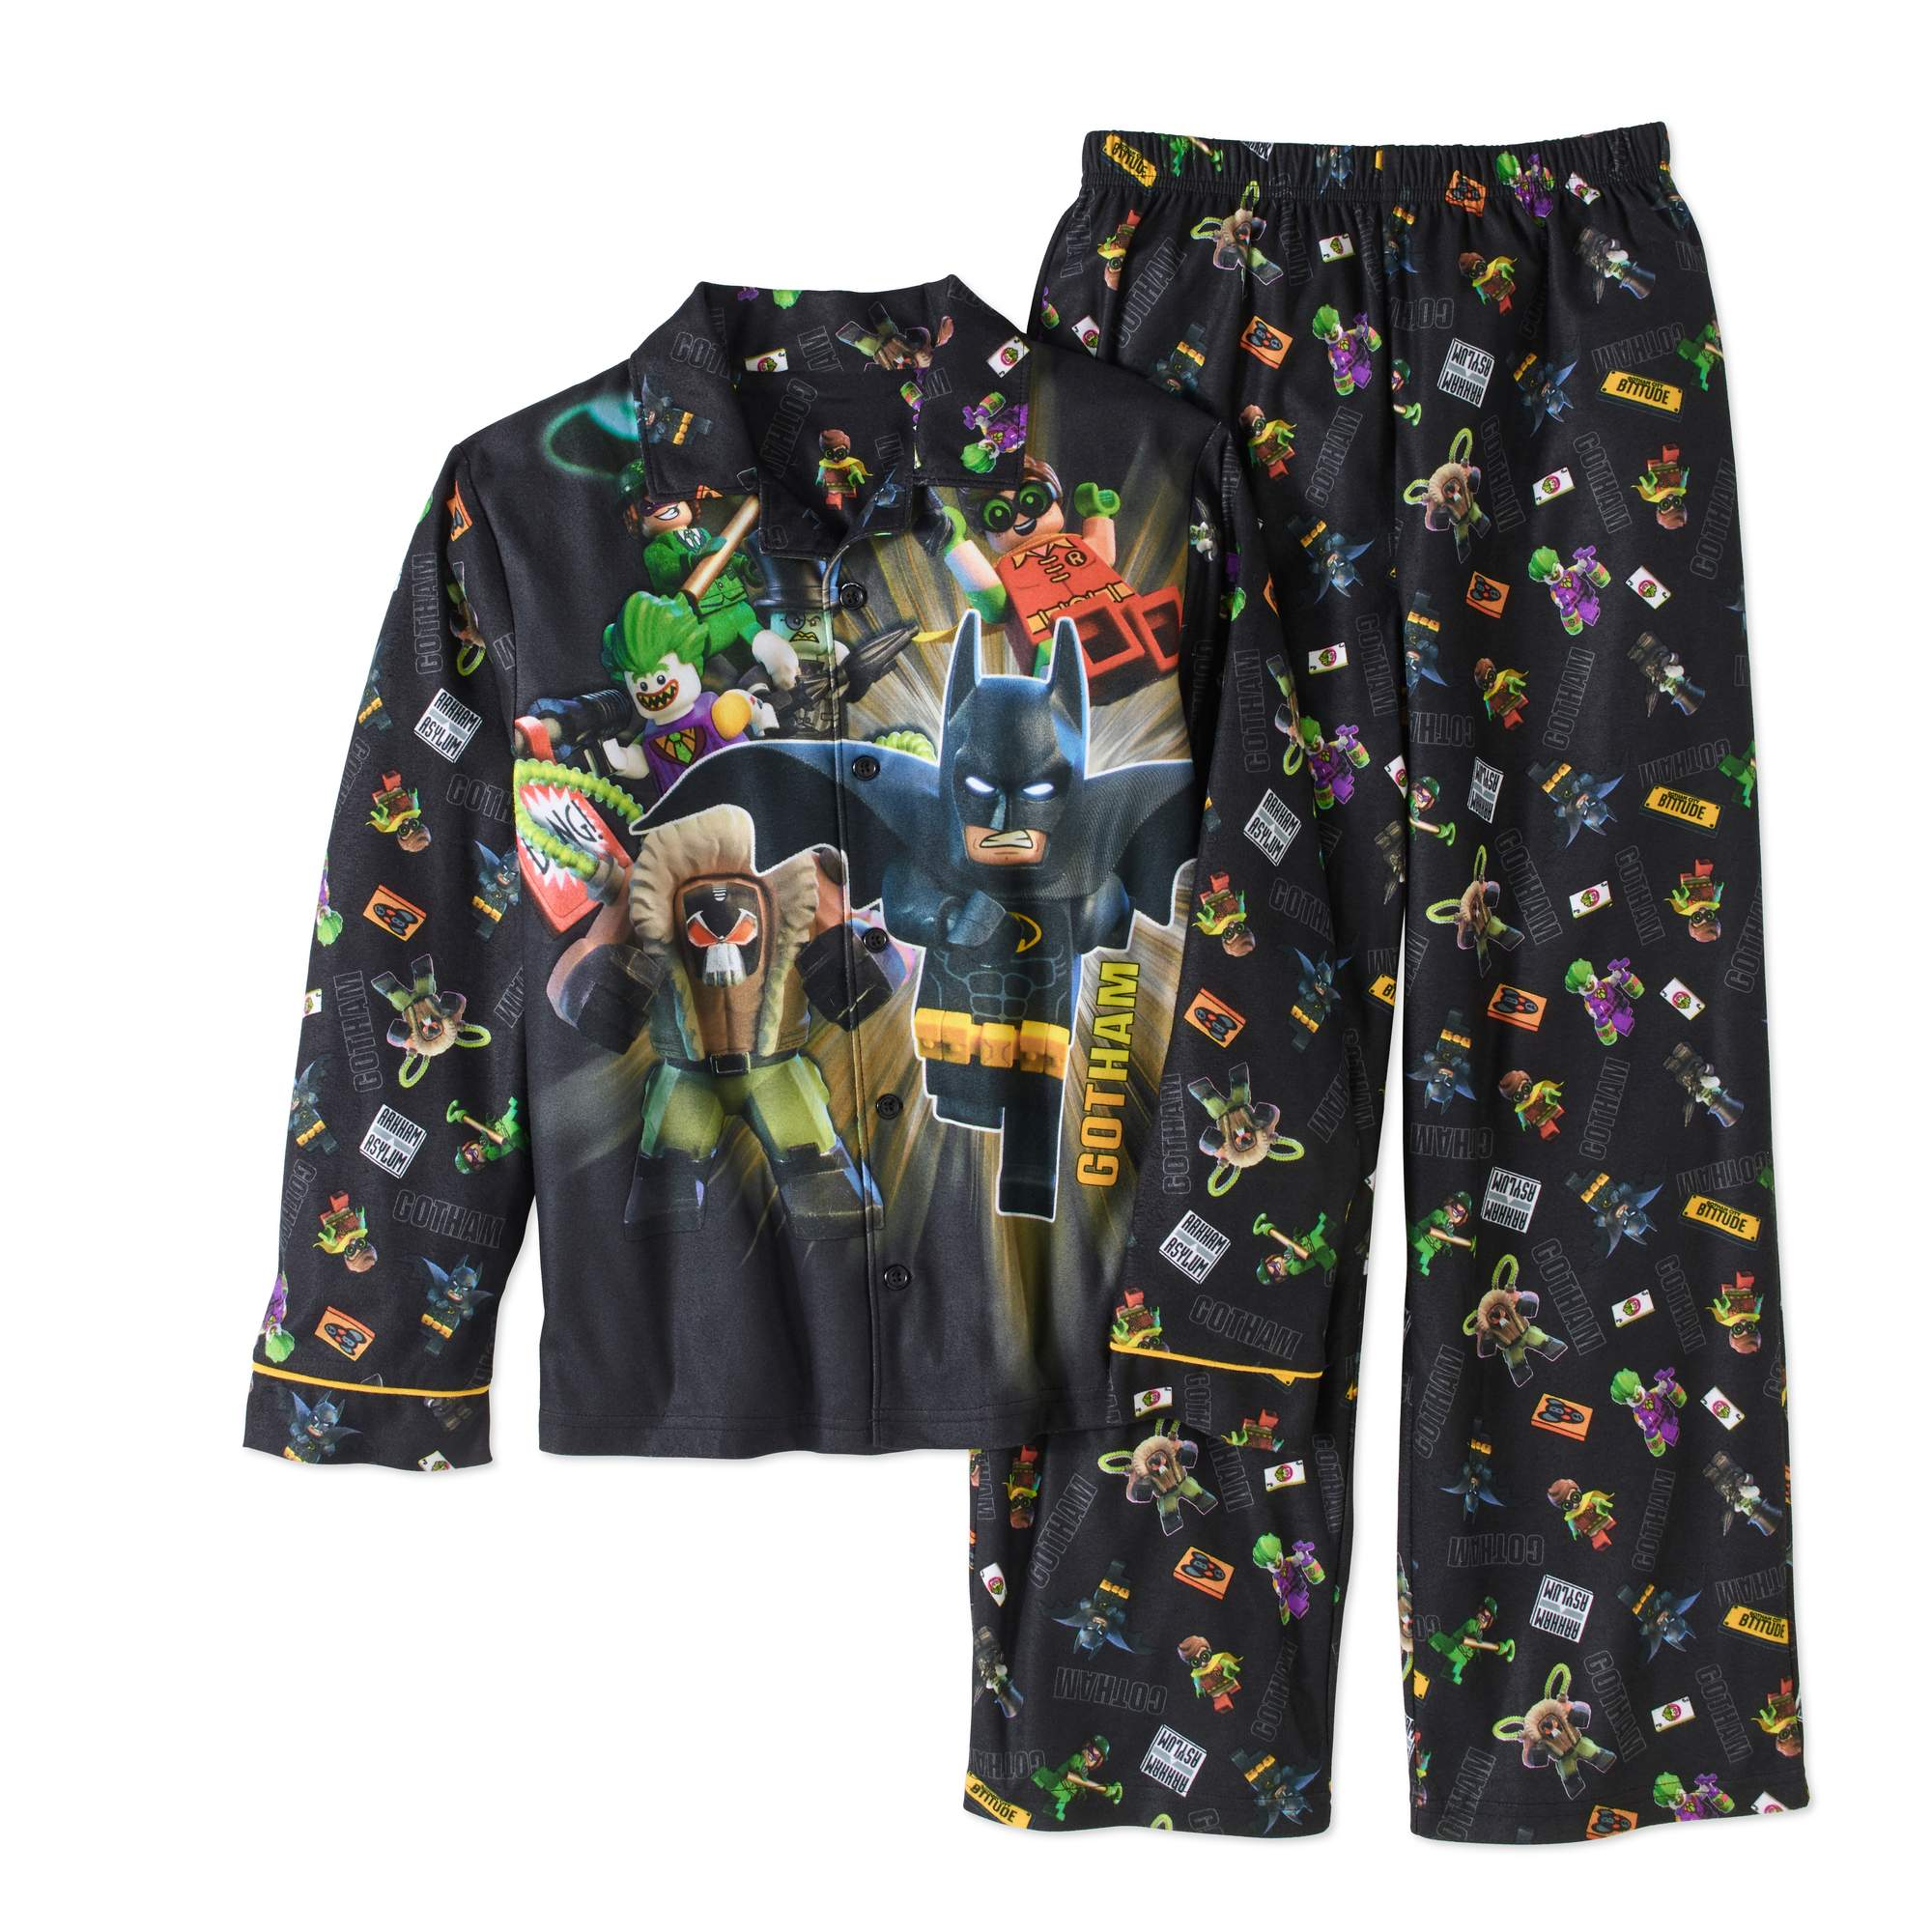 Lego Batman Boys' Micro Fleece Pajama Coat-Style 2-Piece Sleepwear Set by Generic